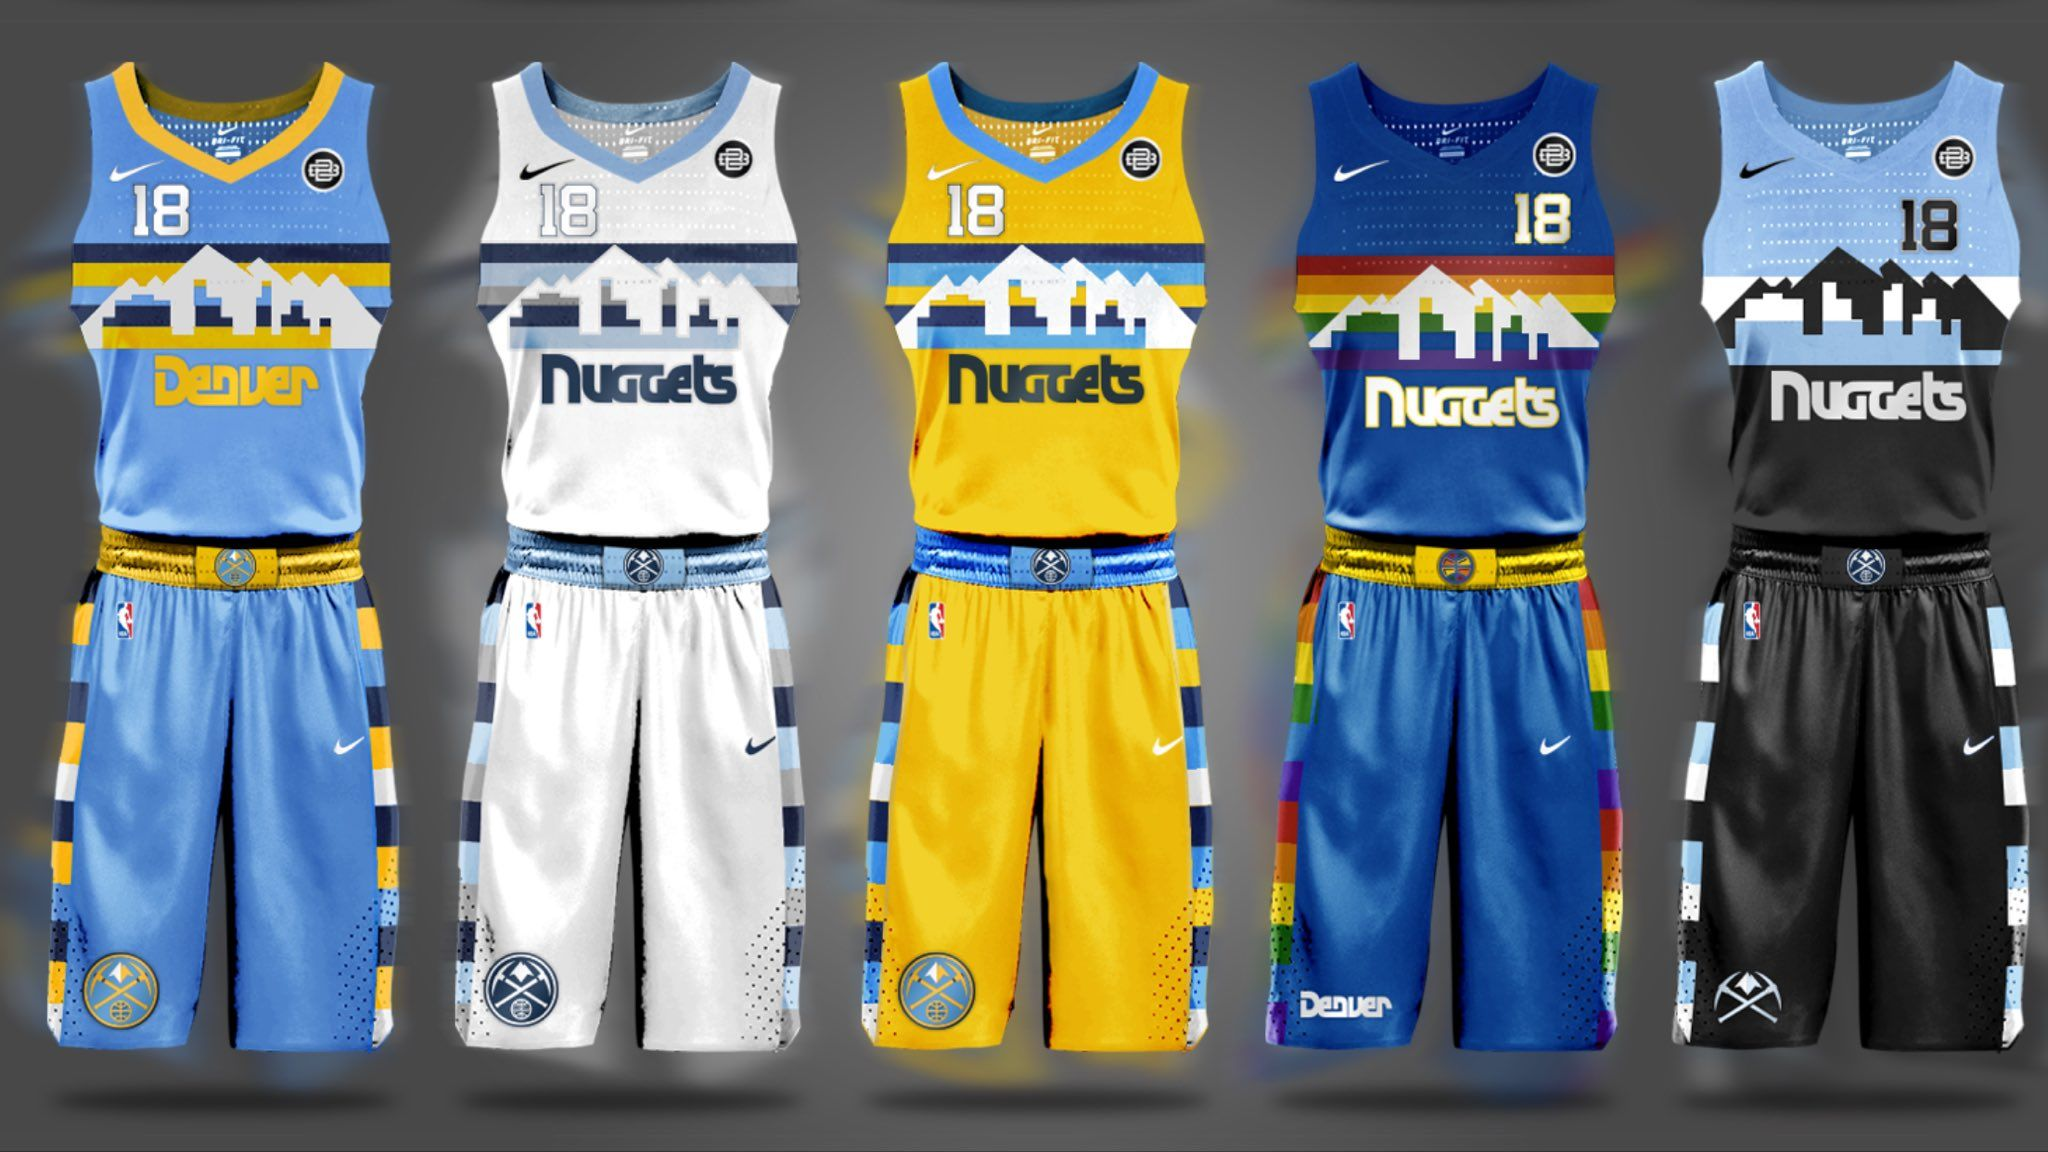 These fan-made Denver Nuggets jersey designs are the best you'll see -  Denver Stiffsclockmenumore-arrow : … | Jersey design, Basketball uniforms  design, Nike jersey